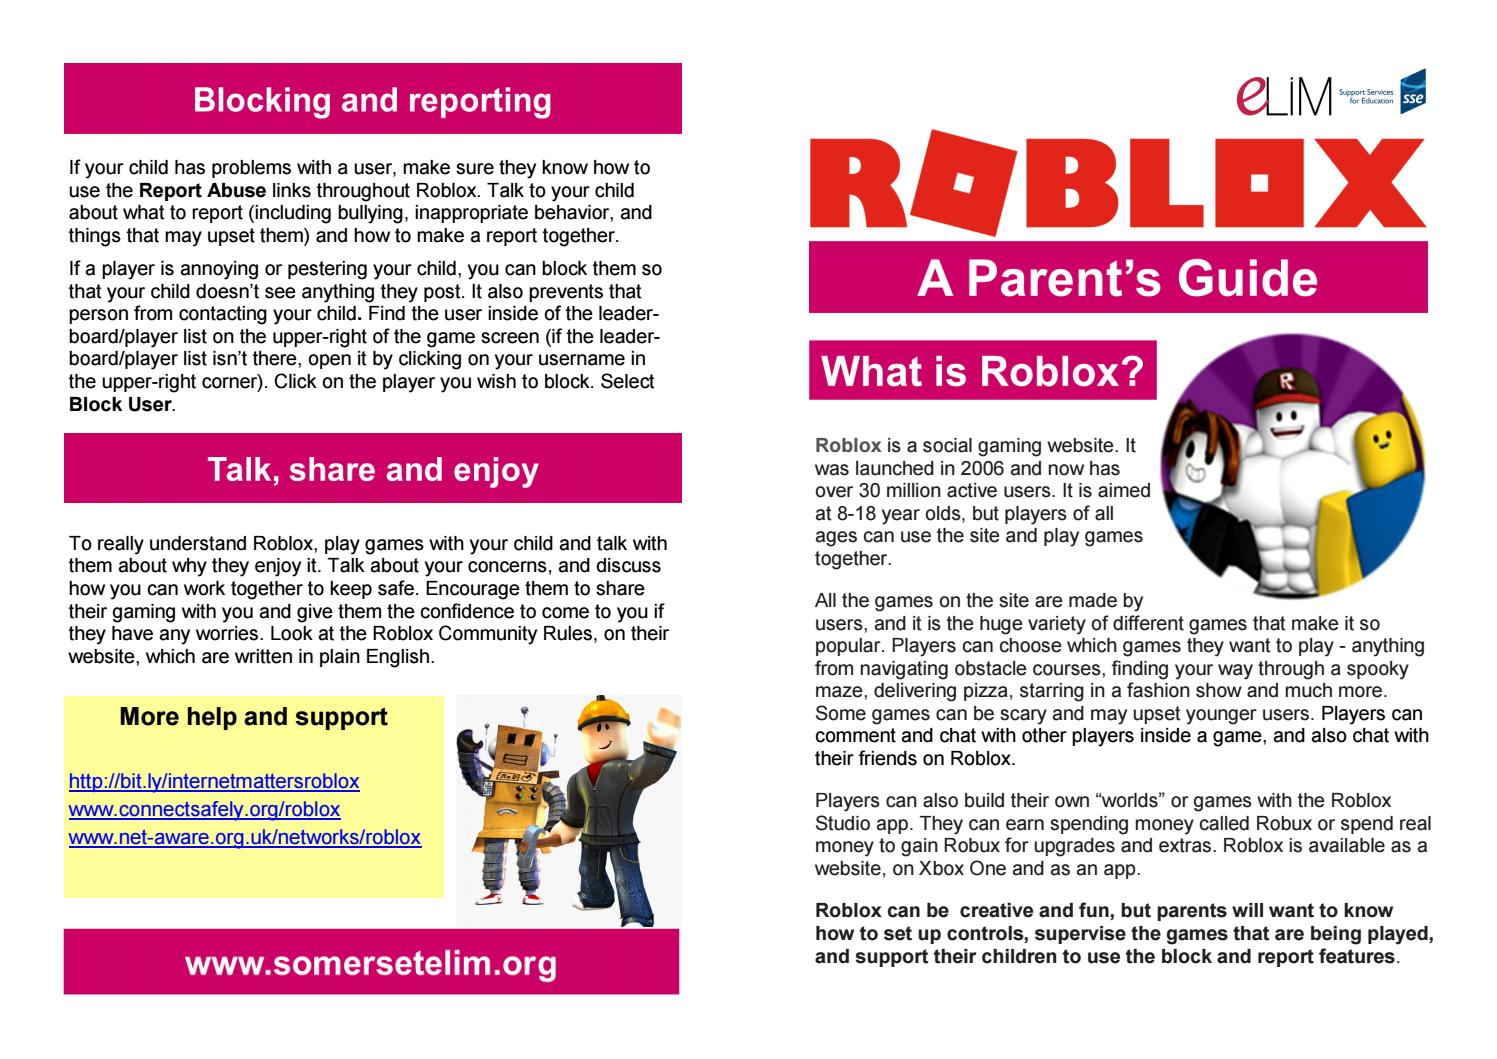 roblox-parents-guide-leaflet-2018 by Edgar Danmer - issuu